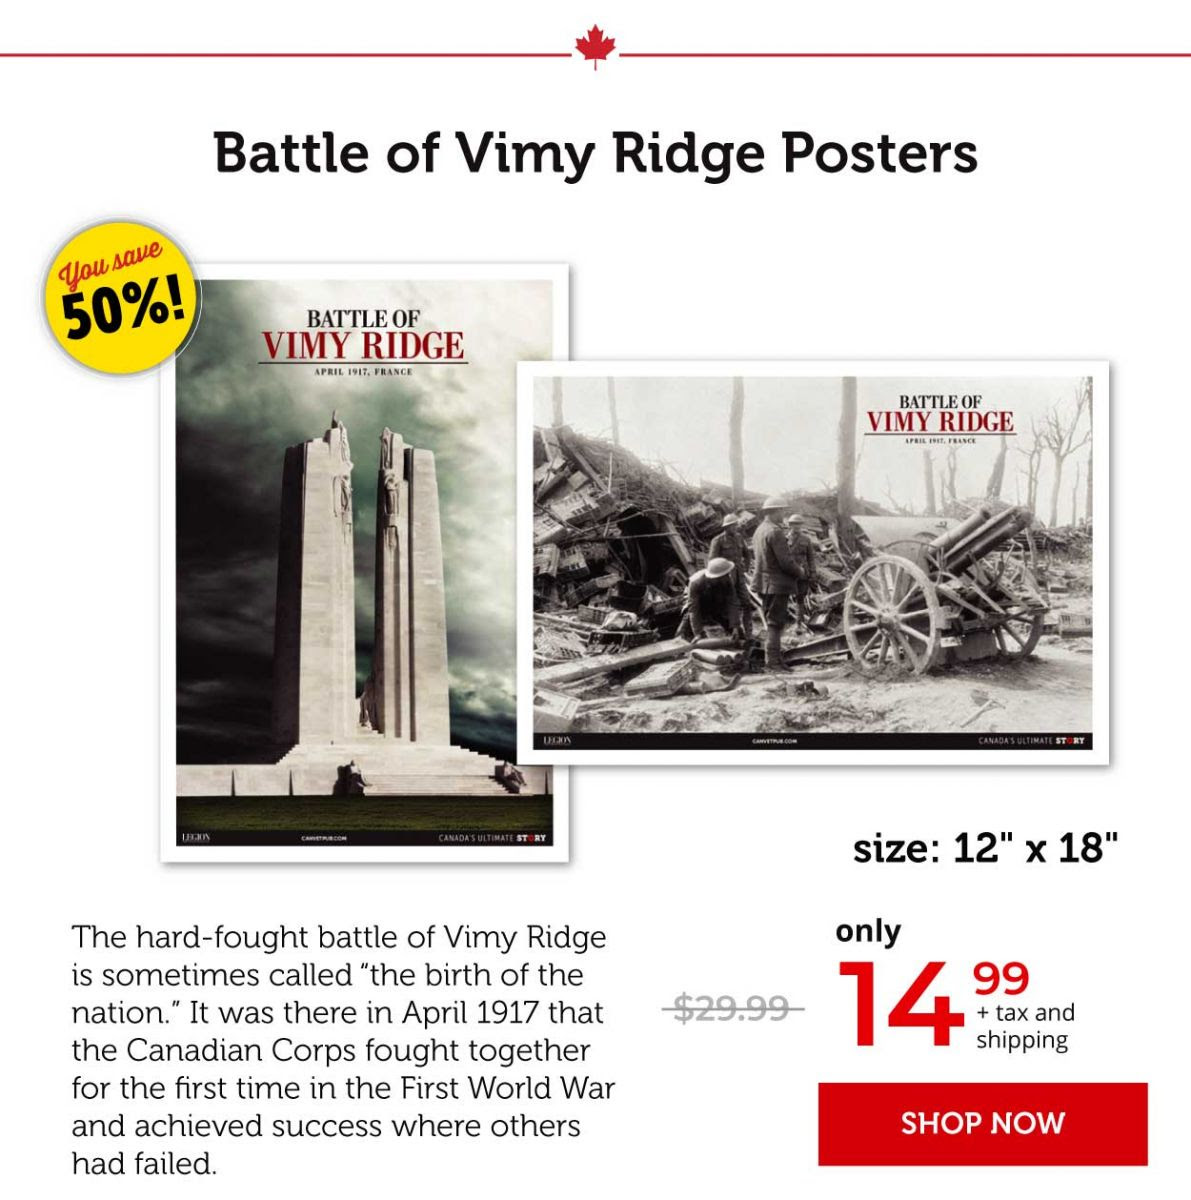 Battle of Vimy Ridge Posters